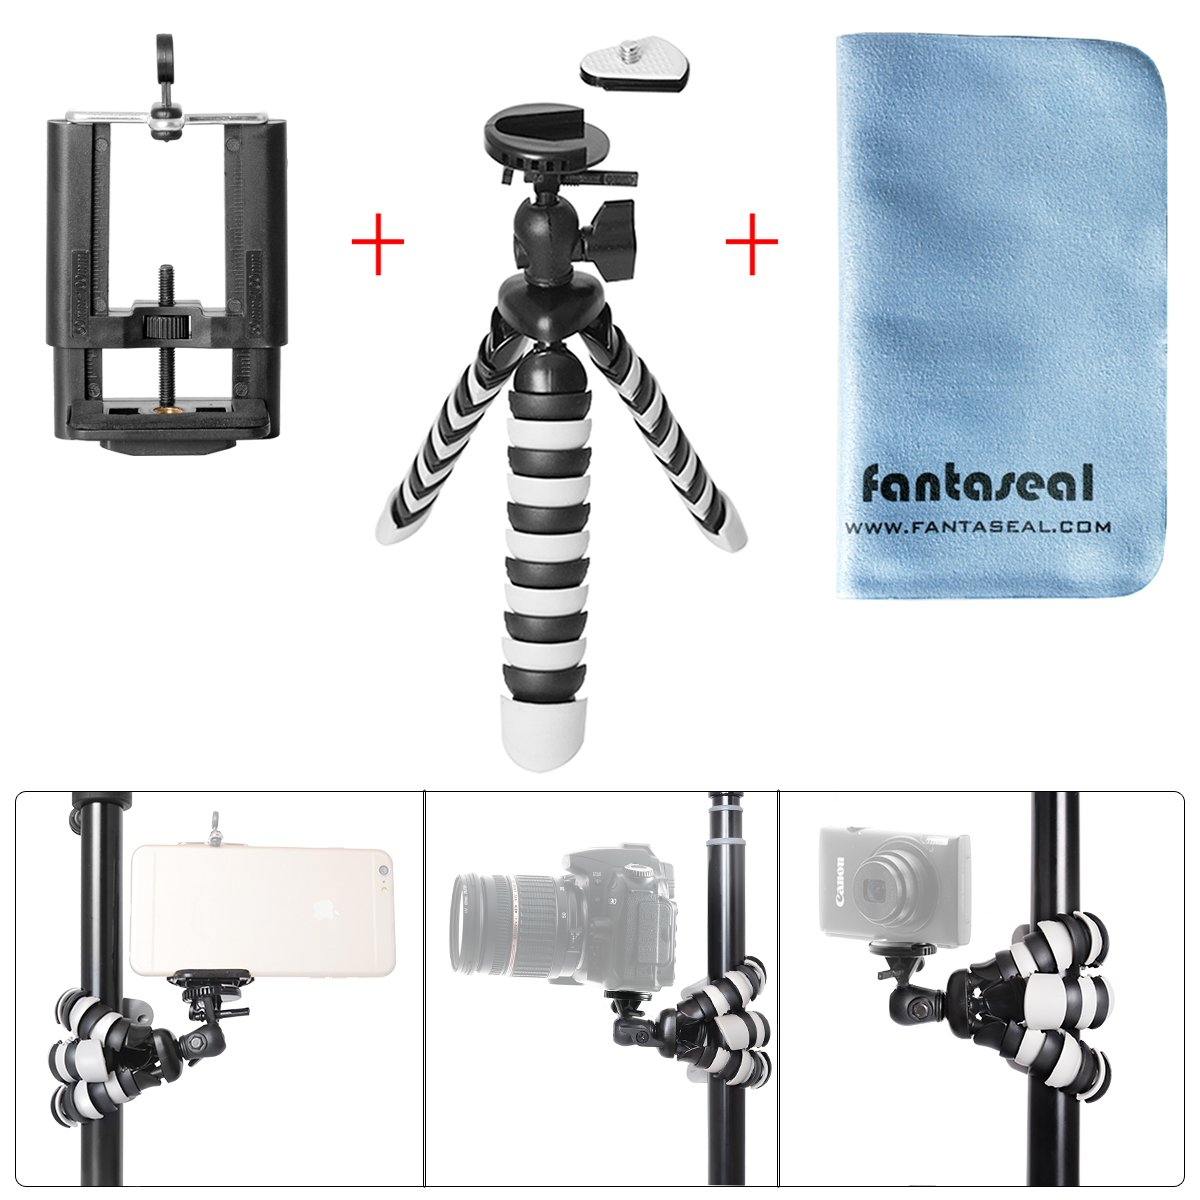 fantaseal DSLR Camera + Smartphone Mini Octopus Tripod 3-in-1 Flexible Outdoor Tripod Table Desk Tripod Travel Portable Tripod Stand Holder iPhone 7+ iPhone 7 Huawei Selfie Tripod